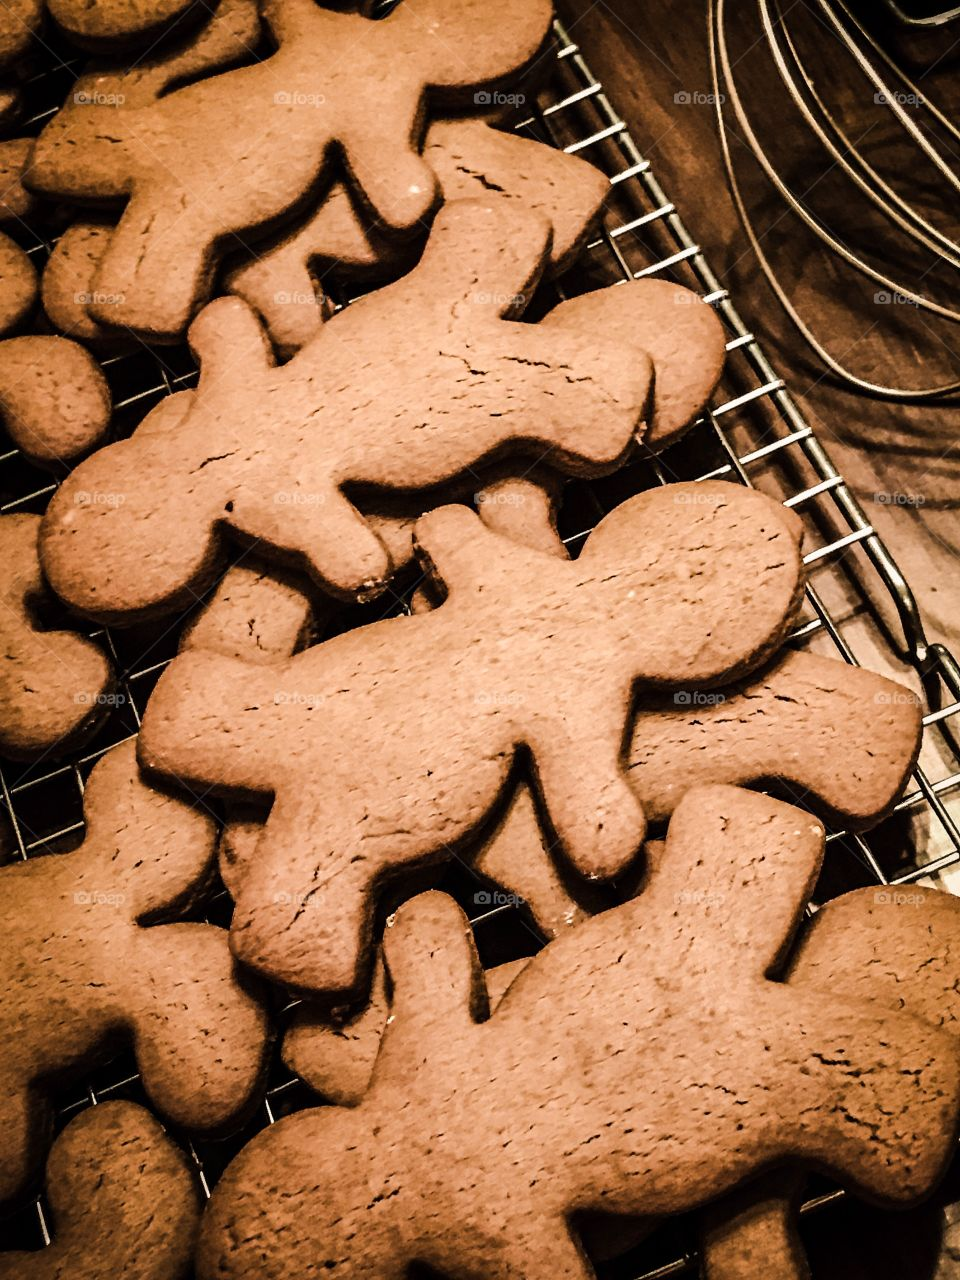 Gingerbread men fresh out of the oven. Yummy is on its way.